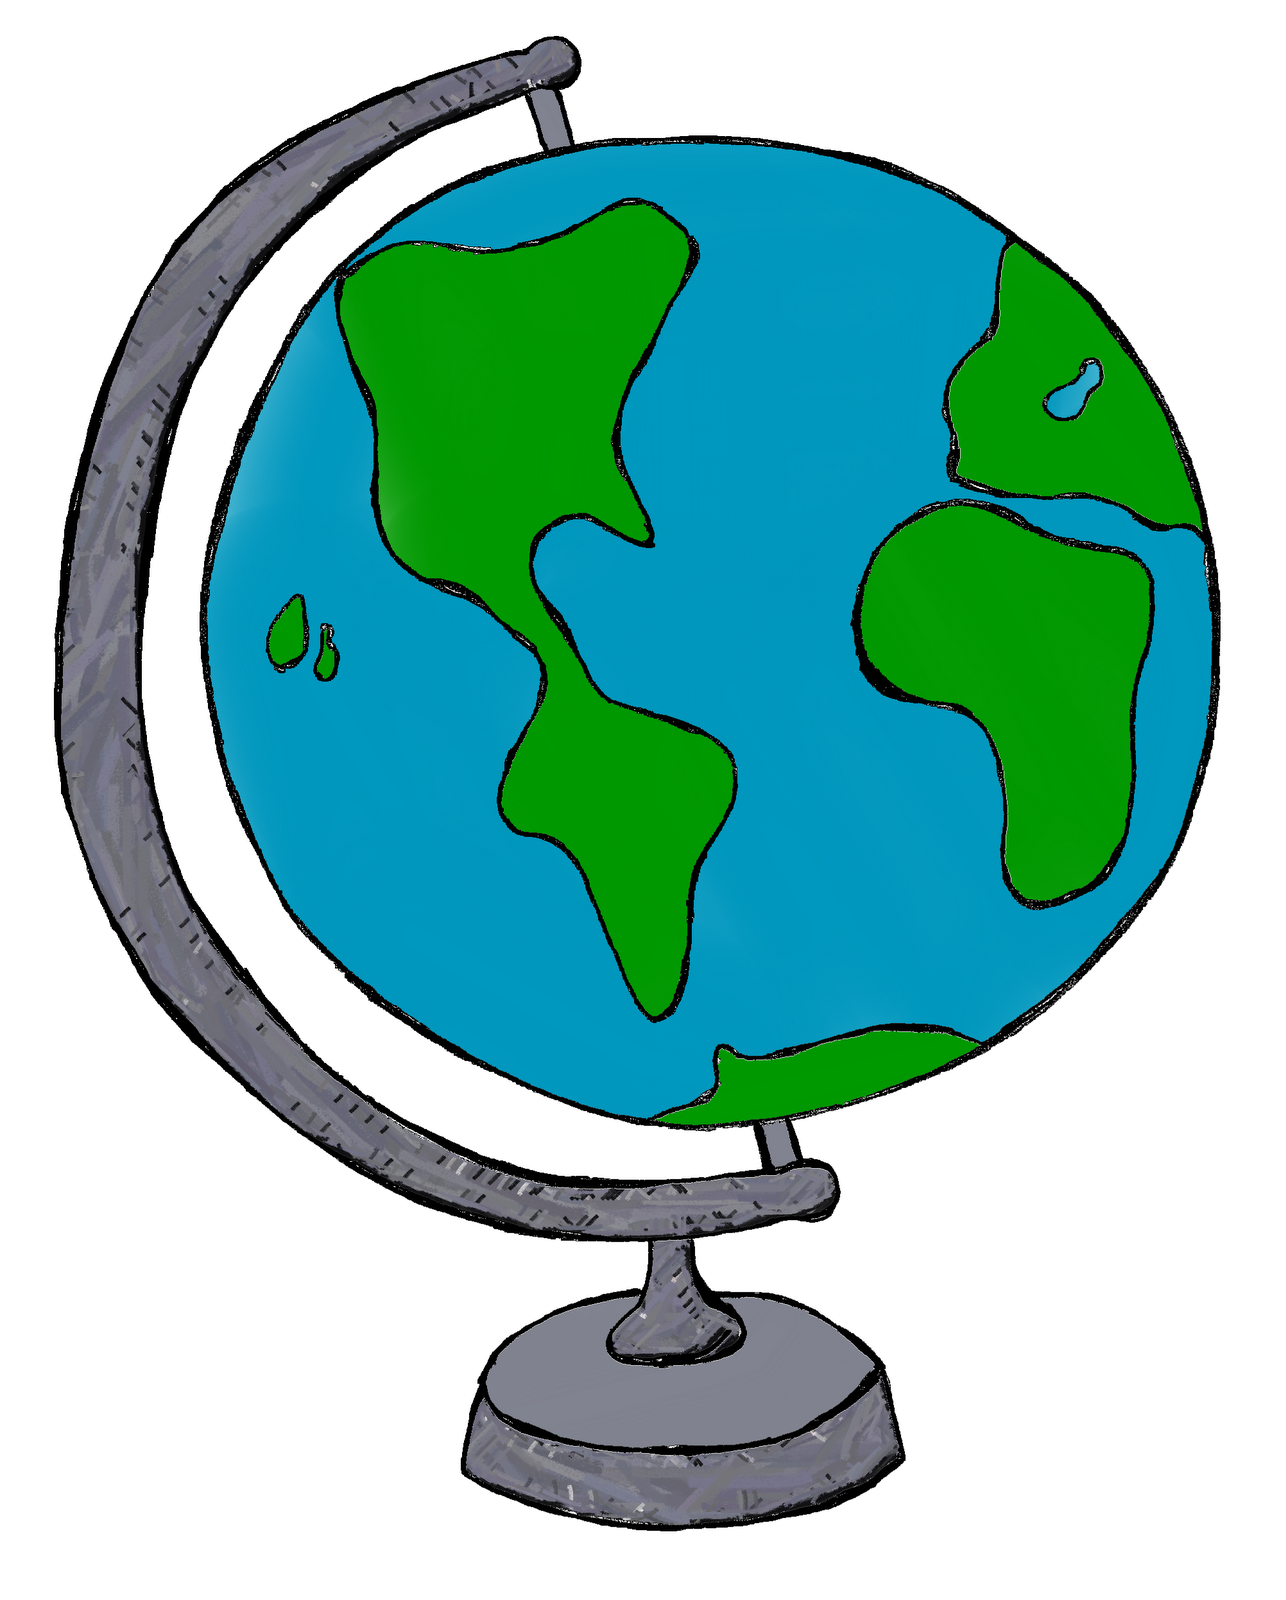 Earth Clipart Black And White | Clipart Panda - Free Clipart Images